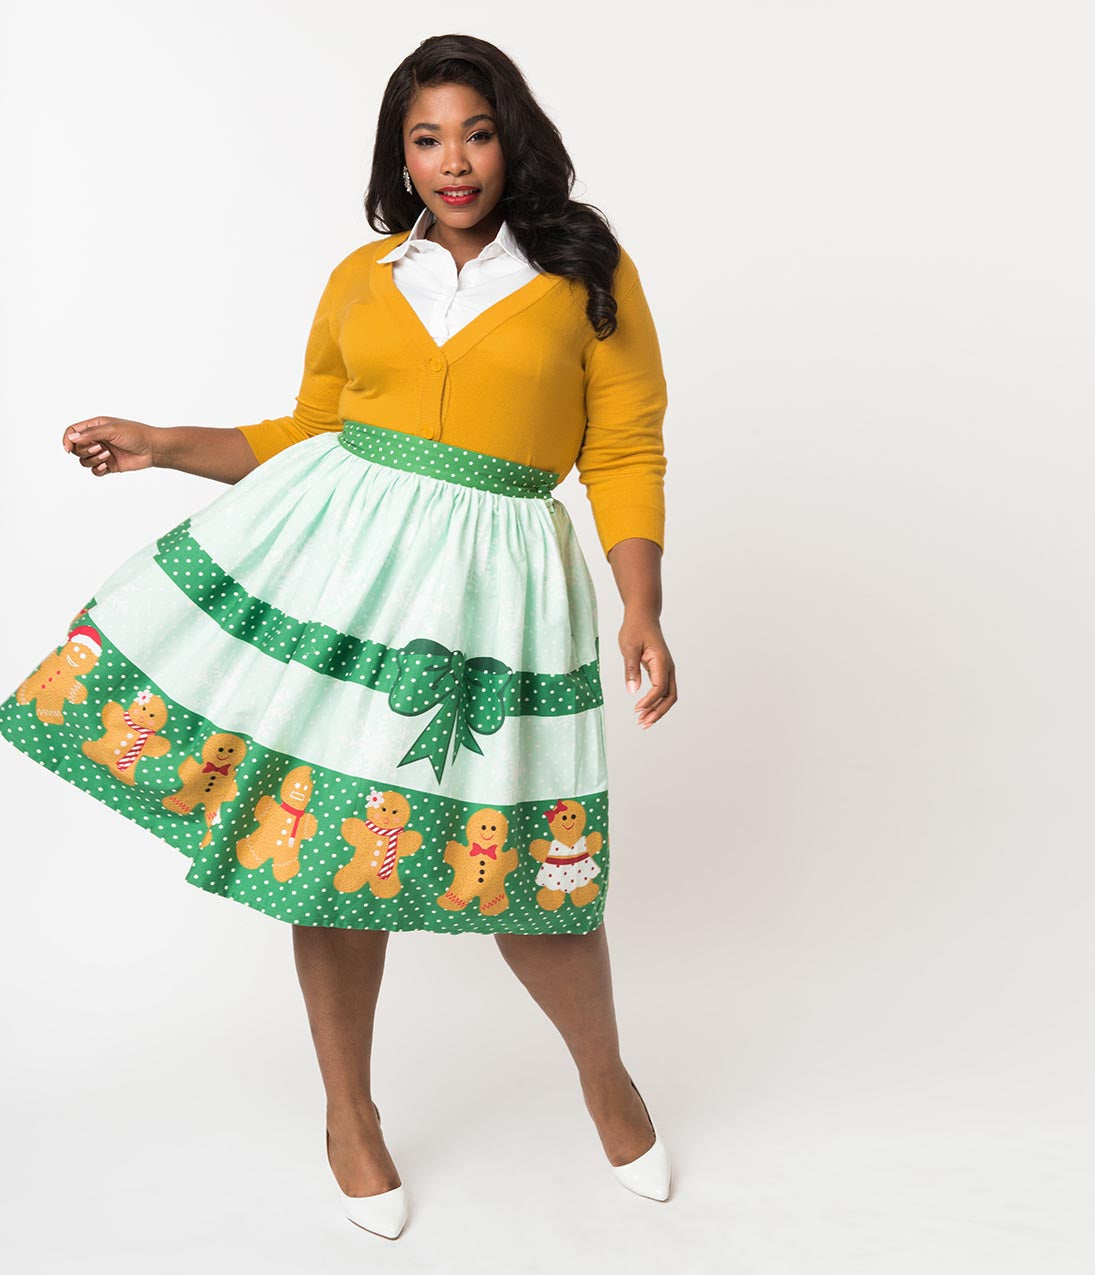 Vintage Christmas Dress | Party Dresses | Night Out Outfits Unique Vintage Plus Size 1950S Style Gingerbread Darlings High Waist Cotton Swing Skirt $78.00 AT vintagedancer.com